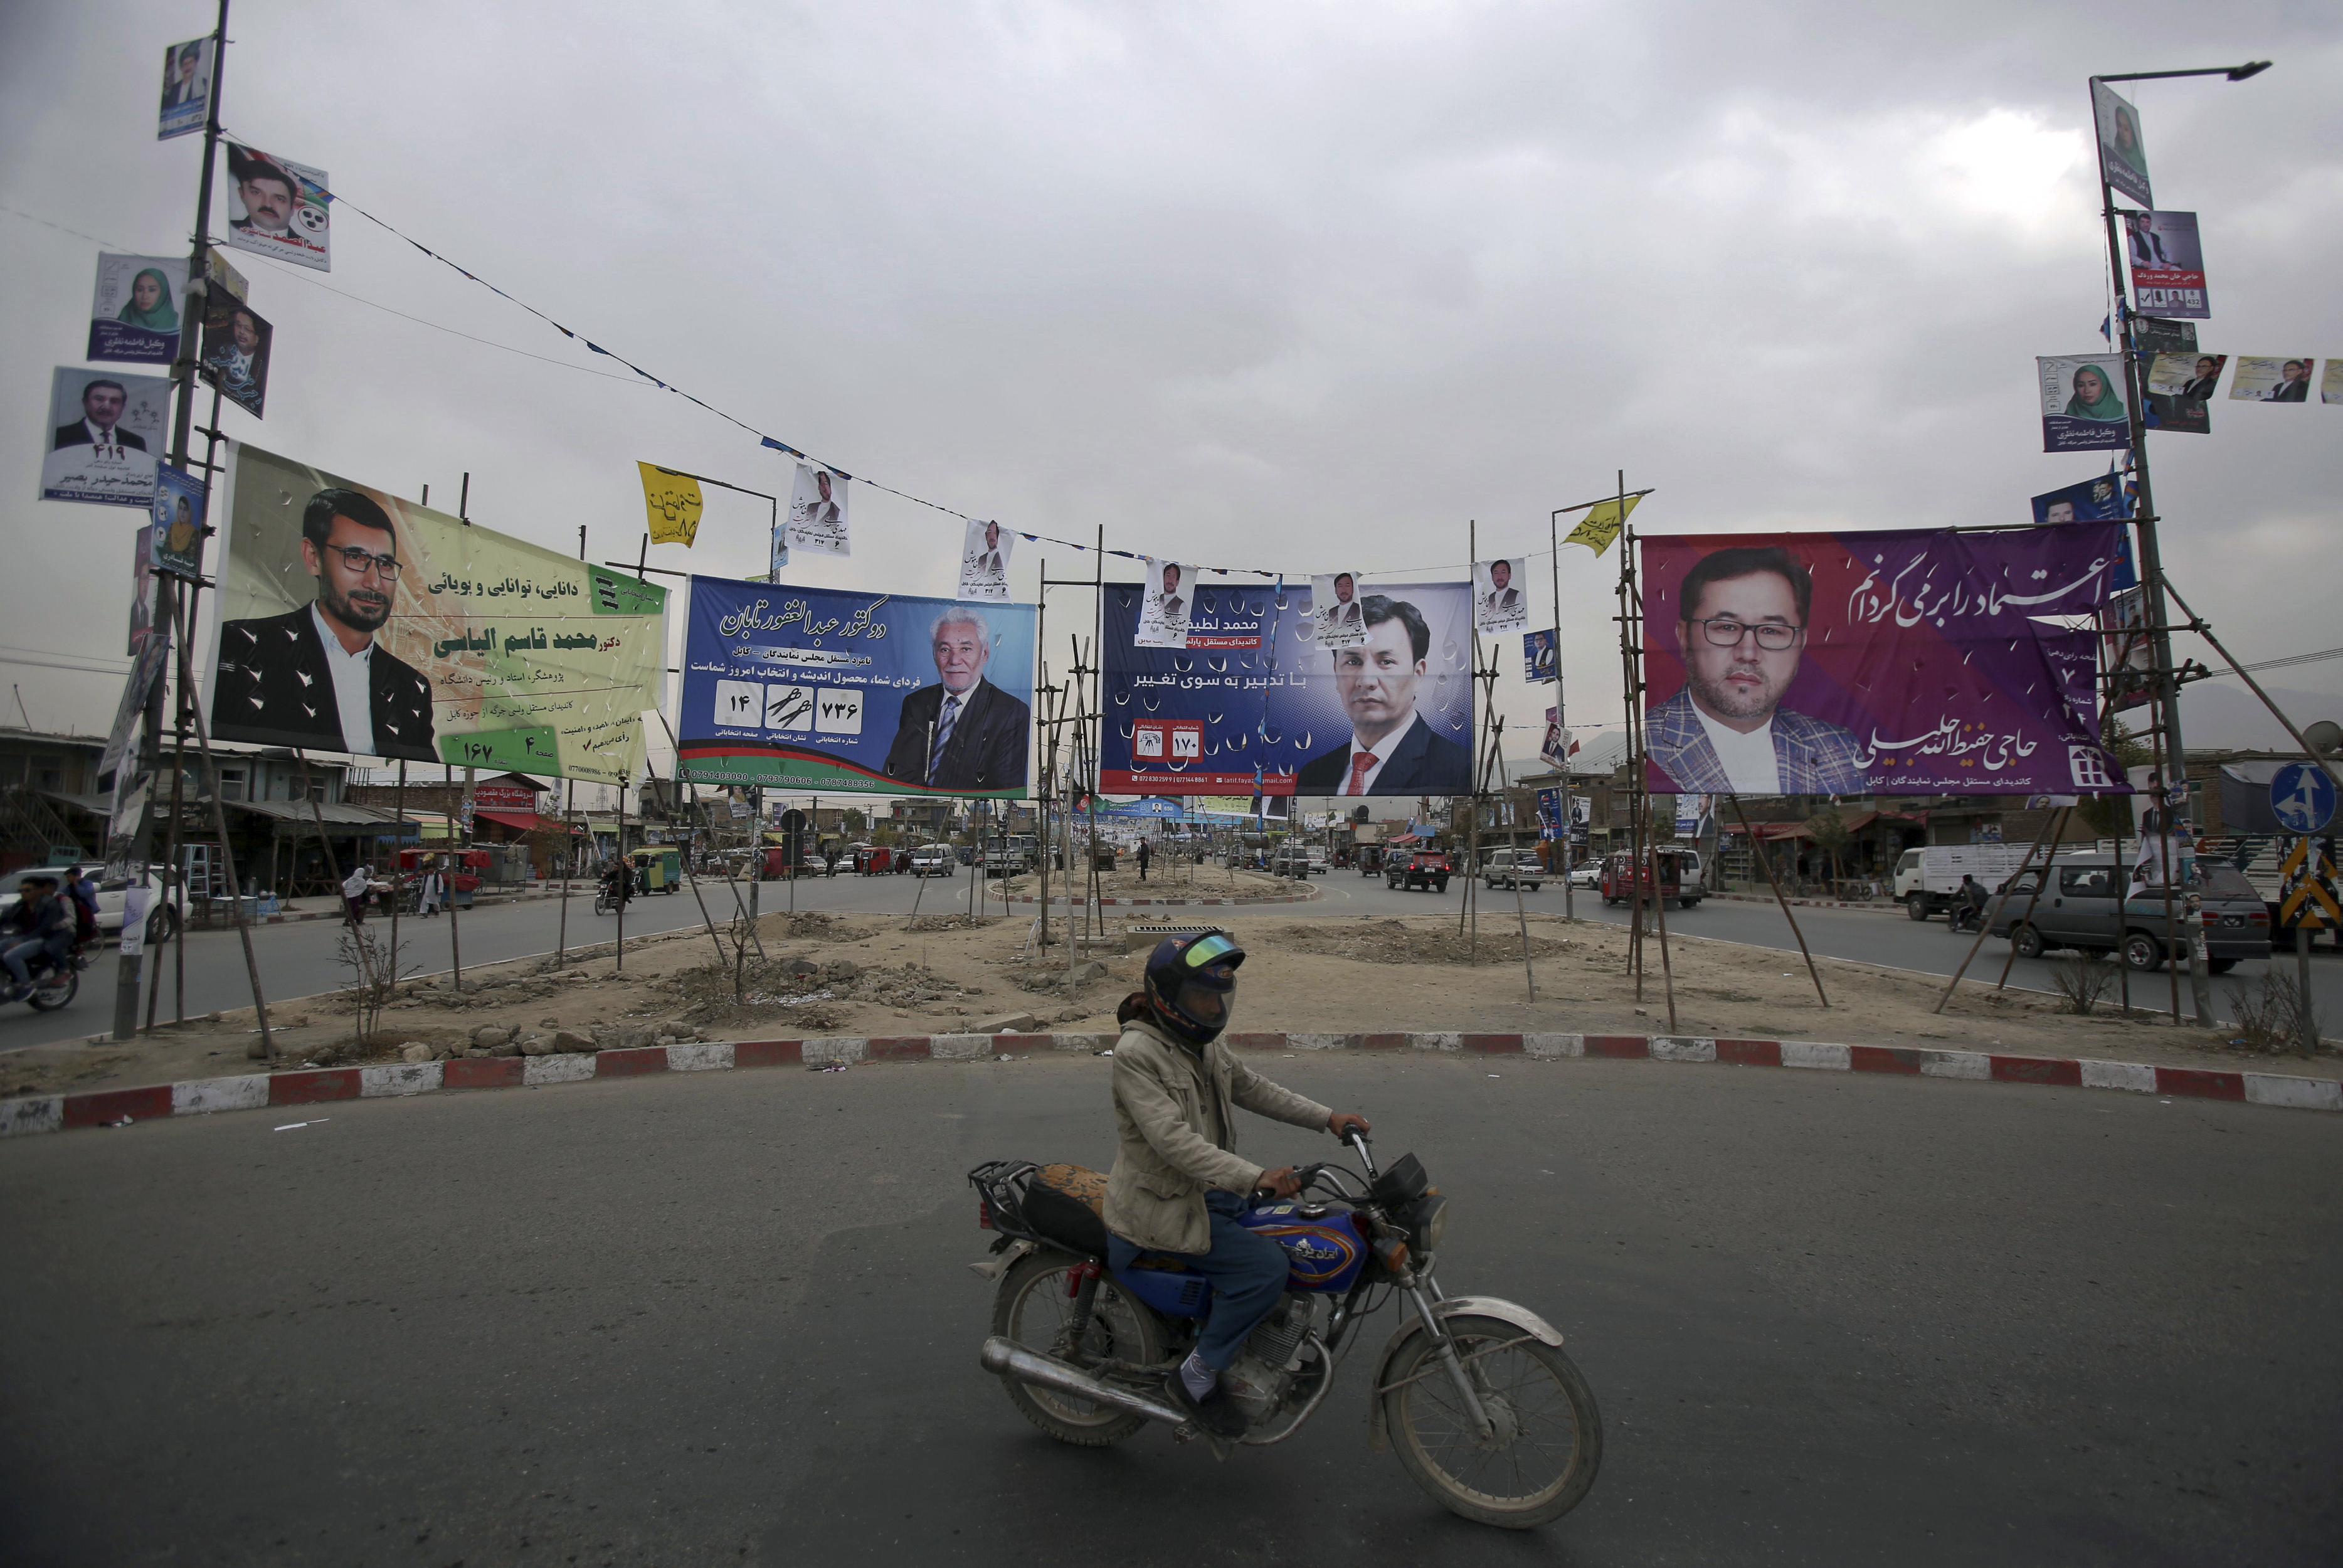 A man rides his motorbike in front of campaign posters for parliamentary candidates in Kabul. Afghans will return to the polls on Saturday, hoping to bring change to a corrupt government that has lost nearly half the country to the Taliban.